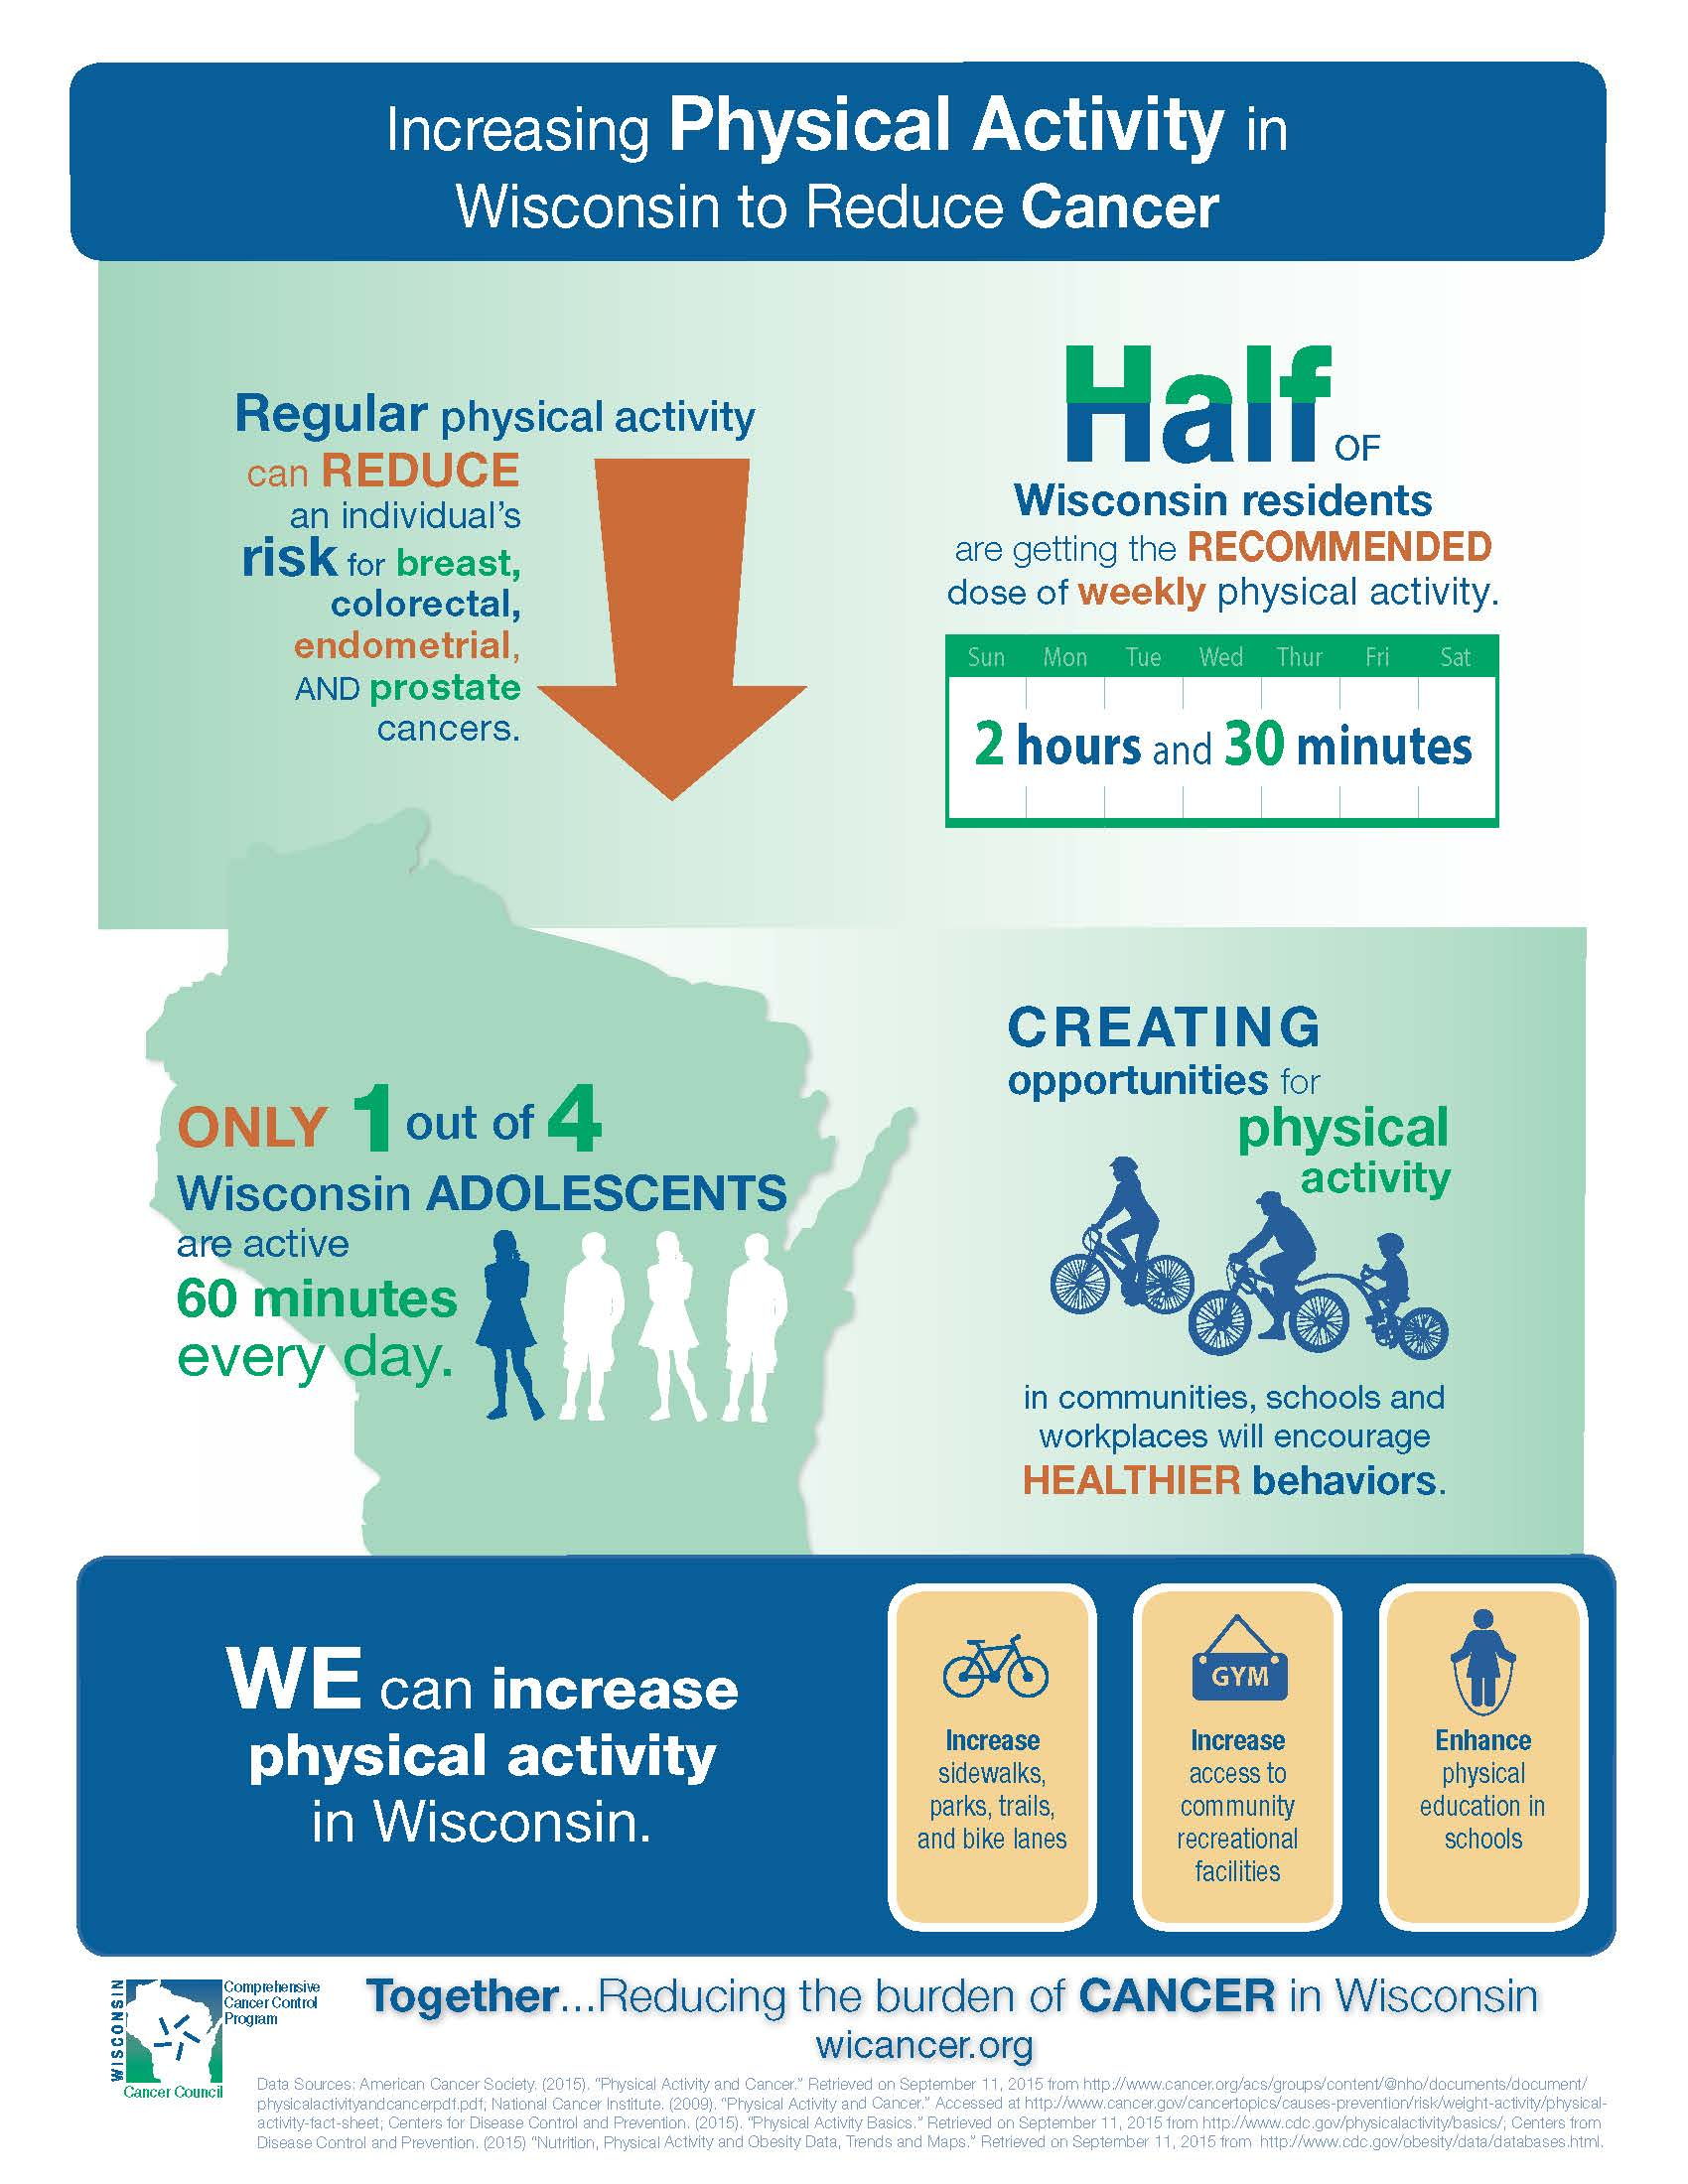 Increasing Physical Activity in Wisconsin to Reduce Cancer